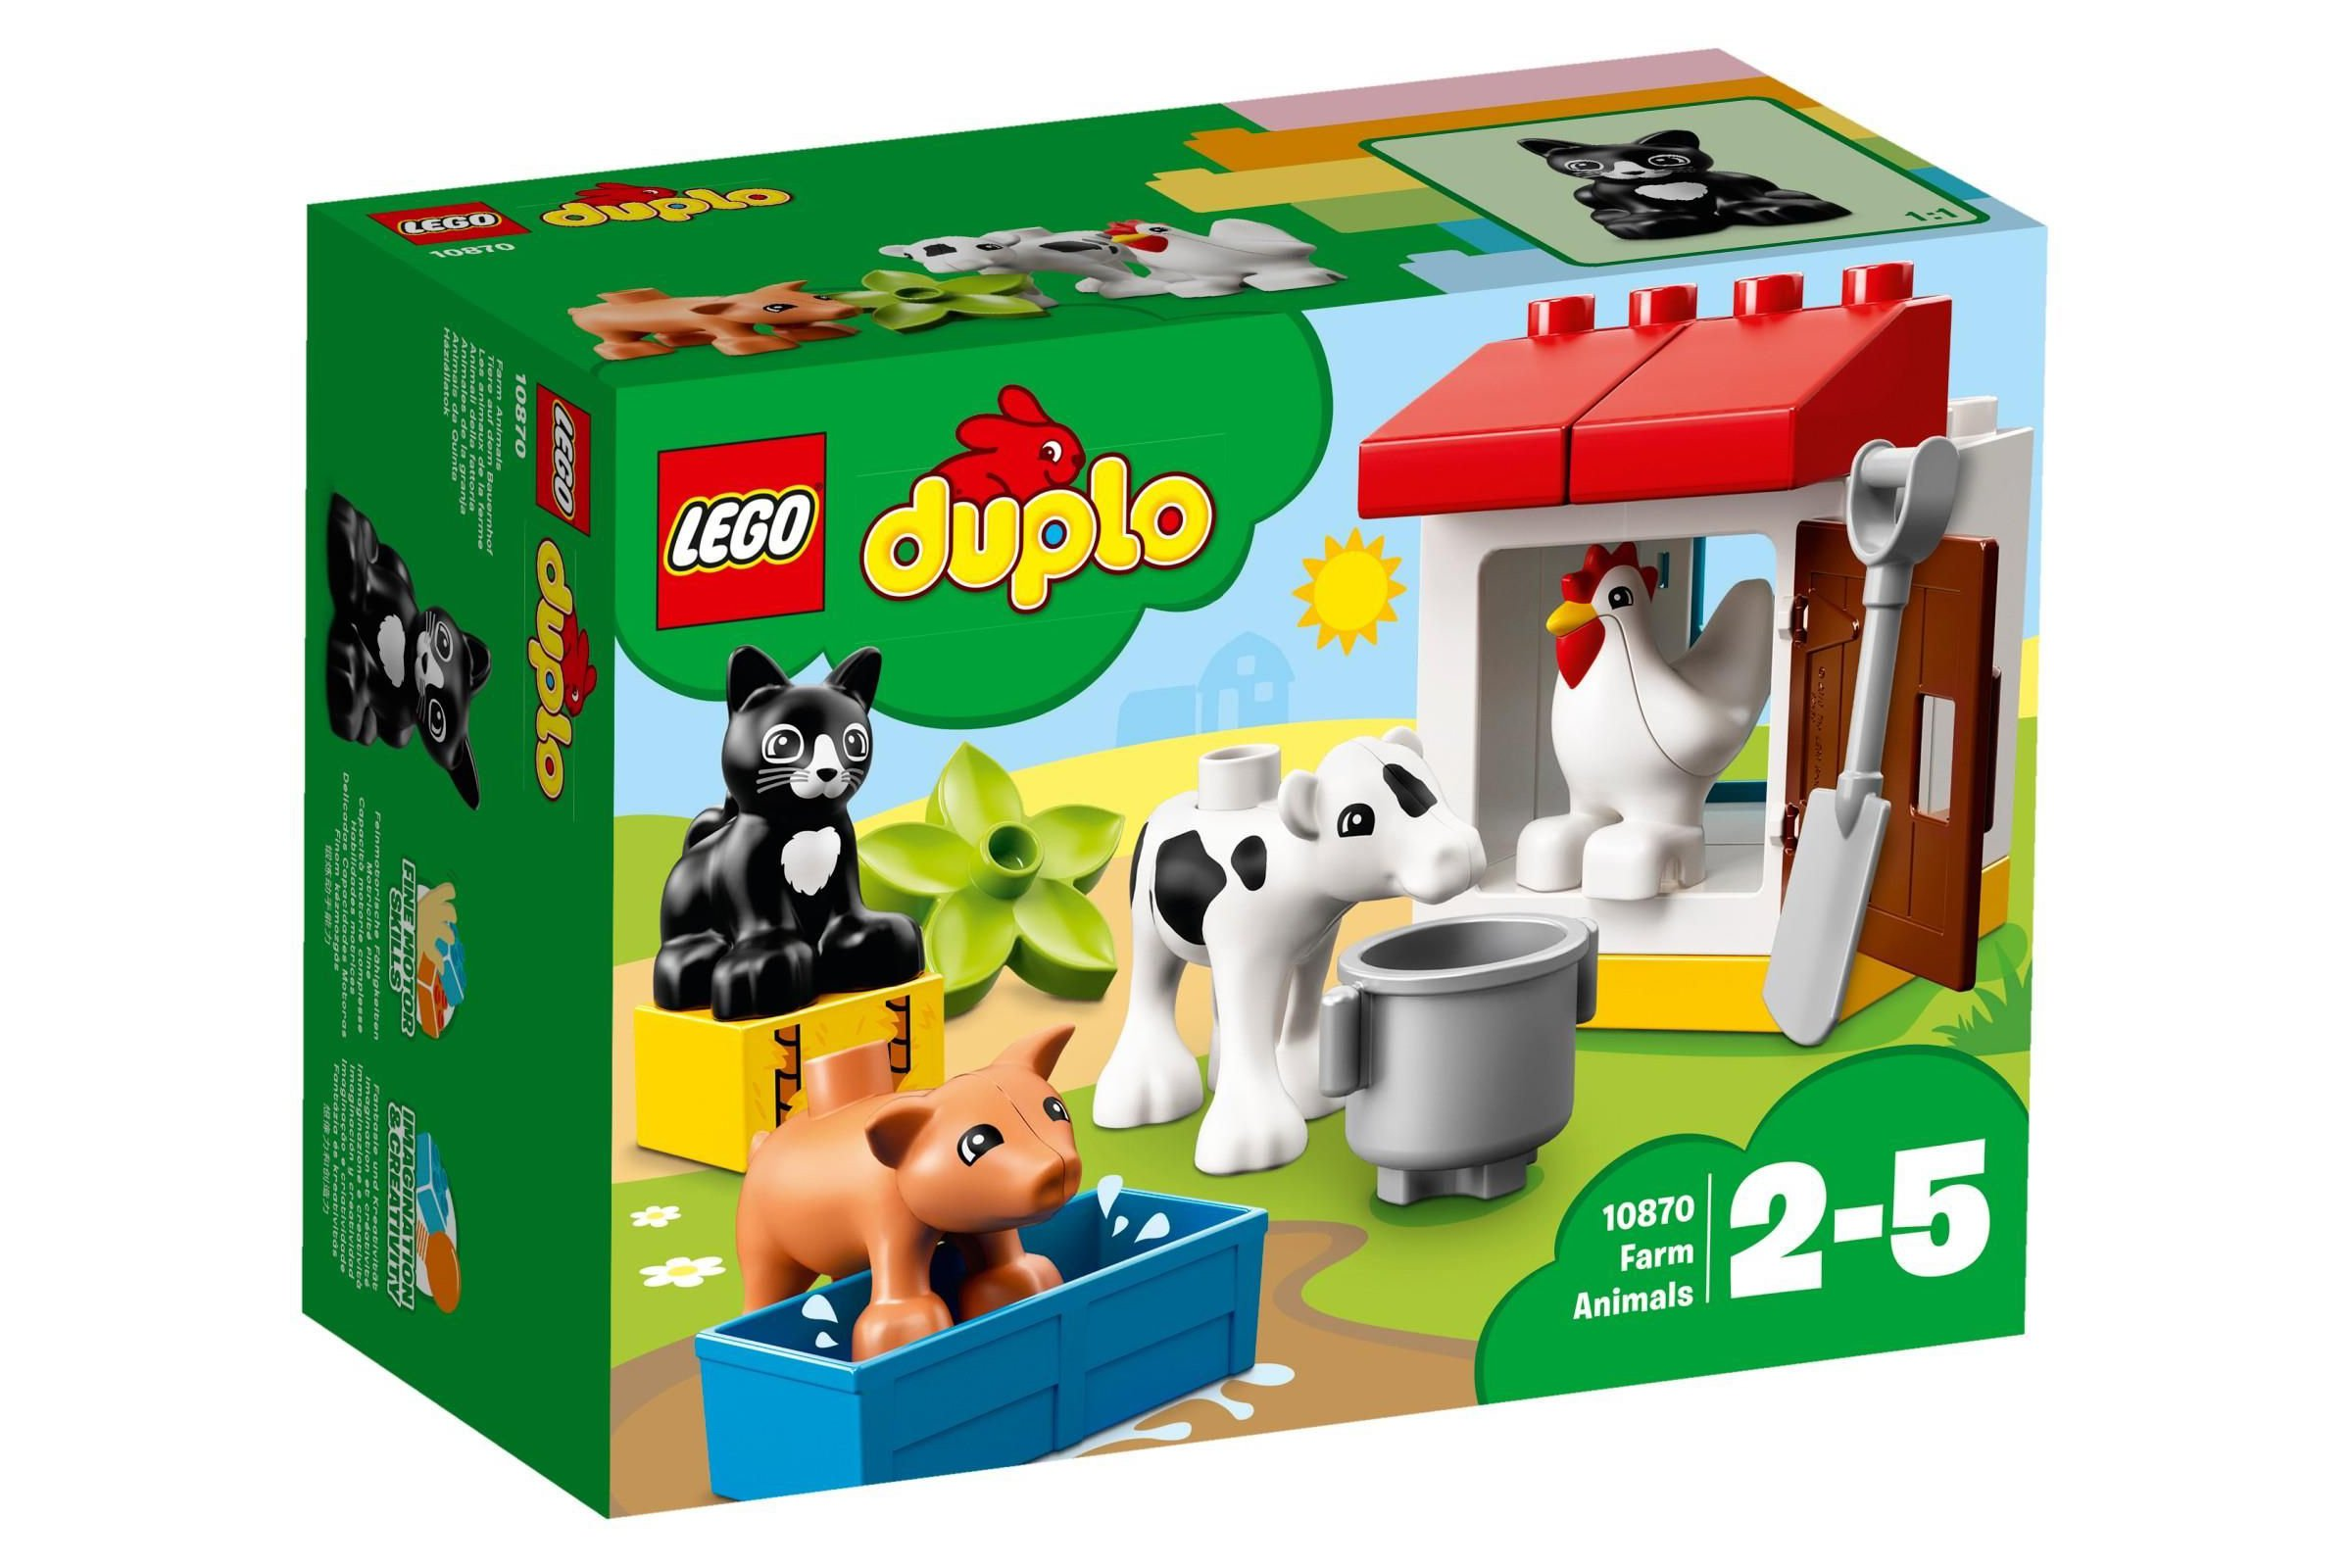 Lego Duplo 10870 Farm Animals House And Garden Toys Lego Dropmax